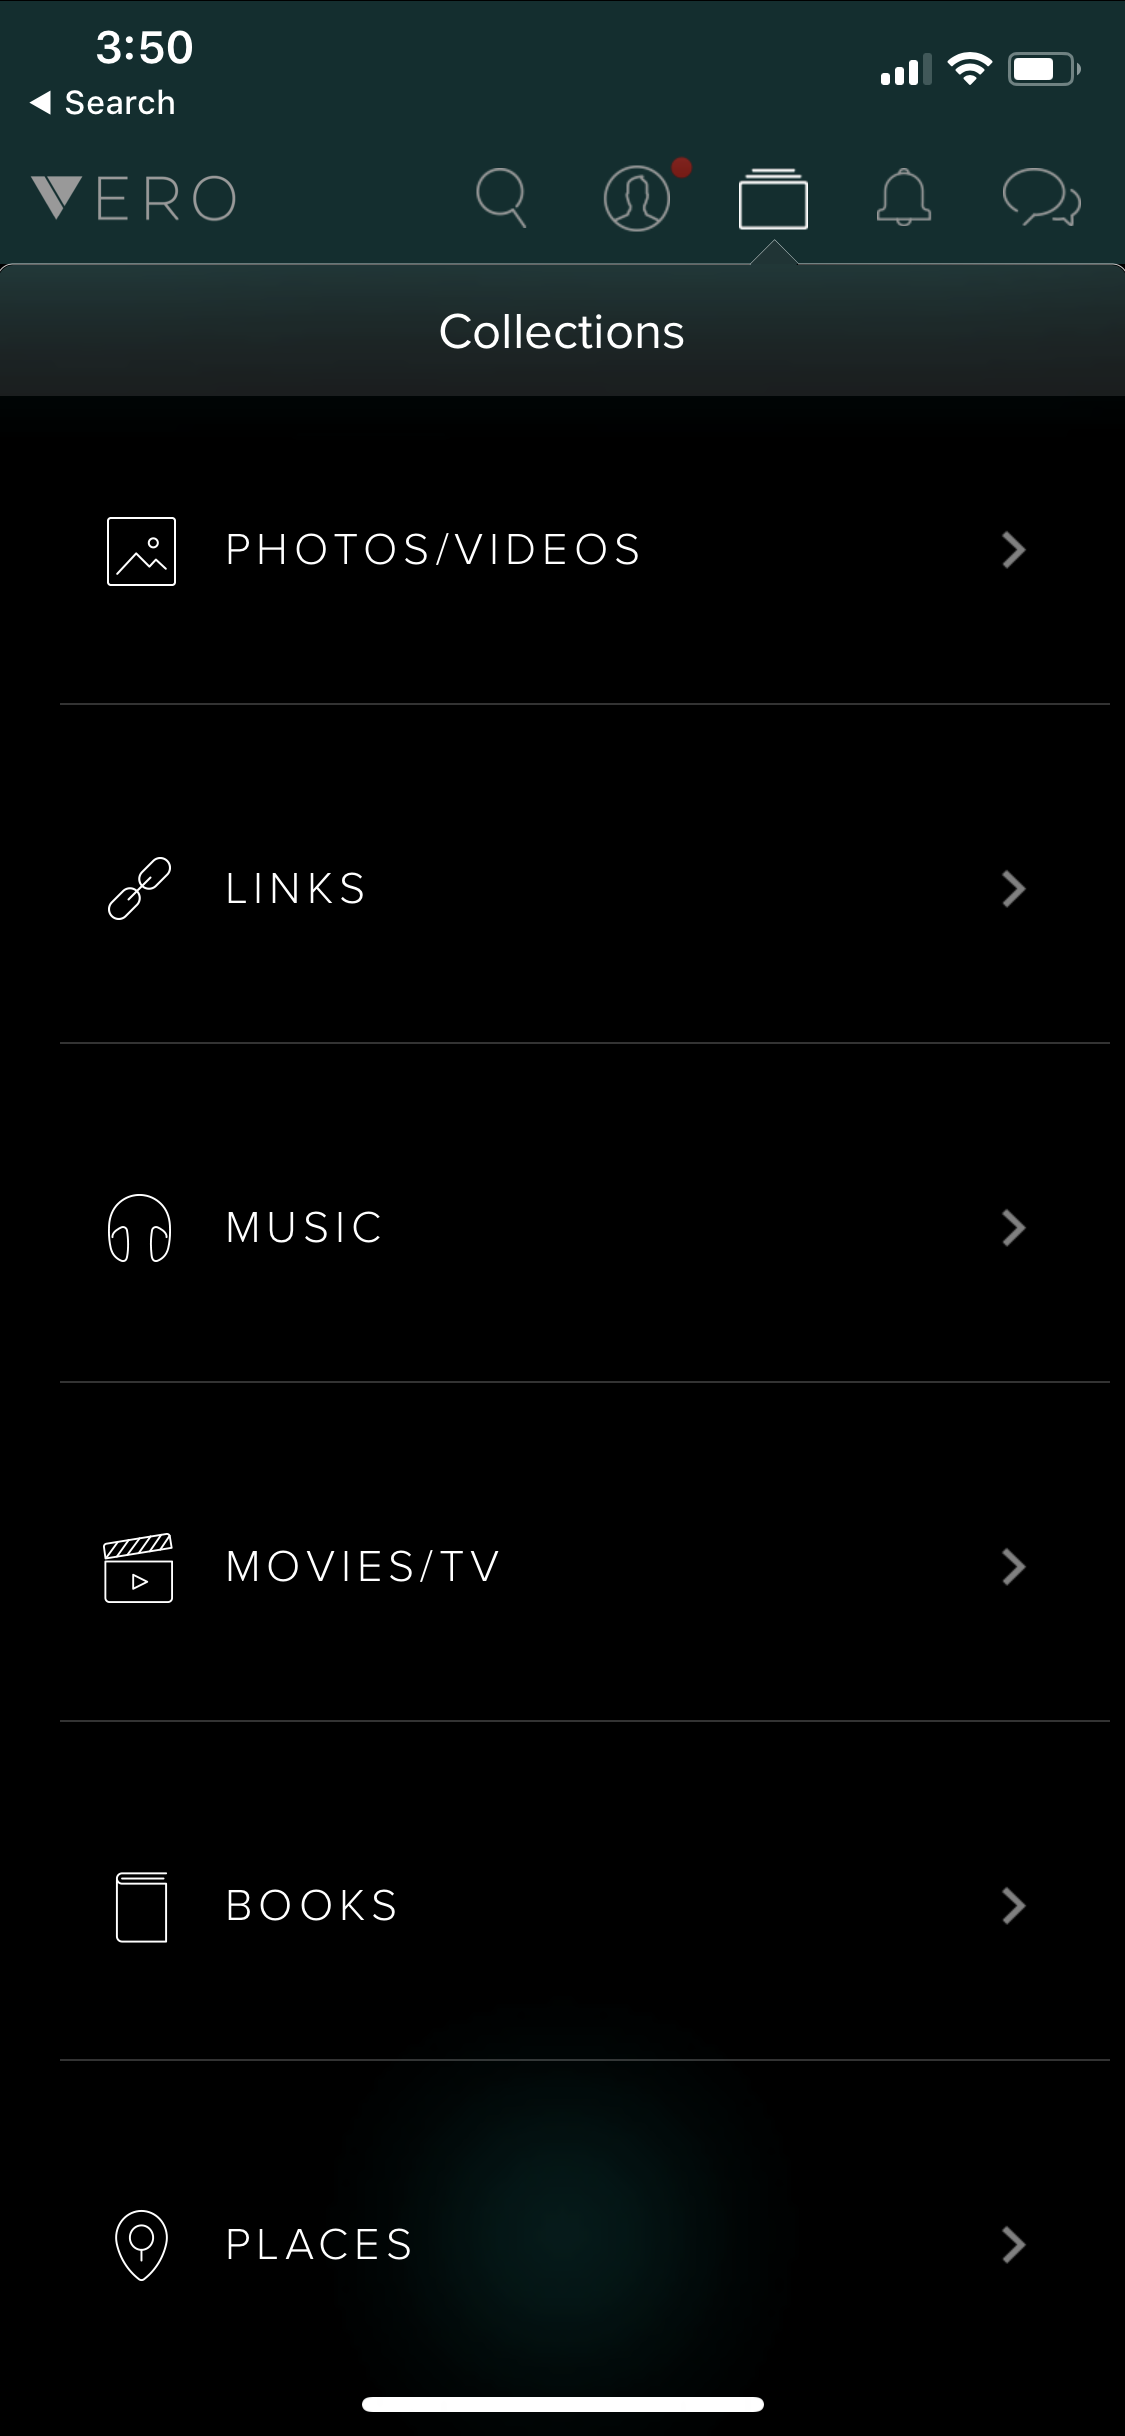 Vero App Collections